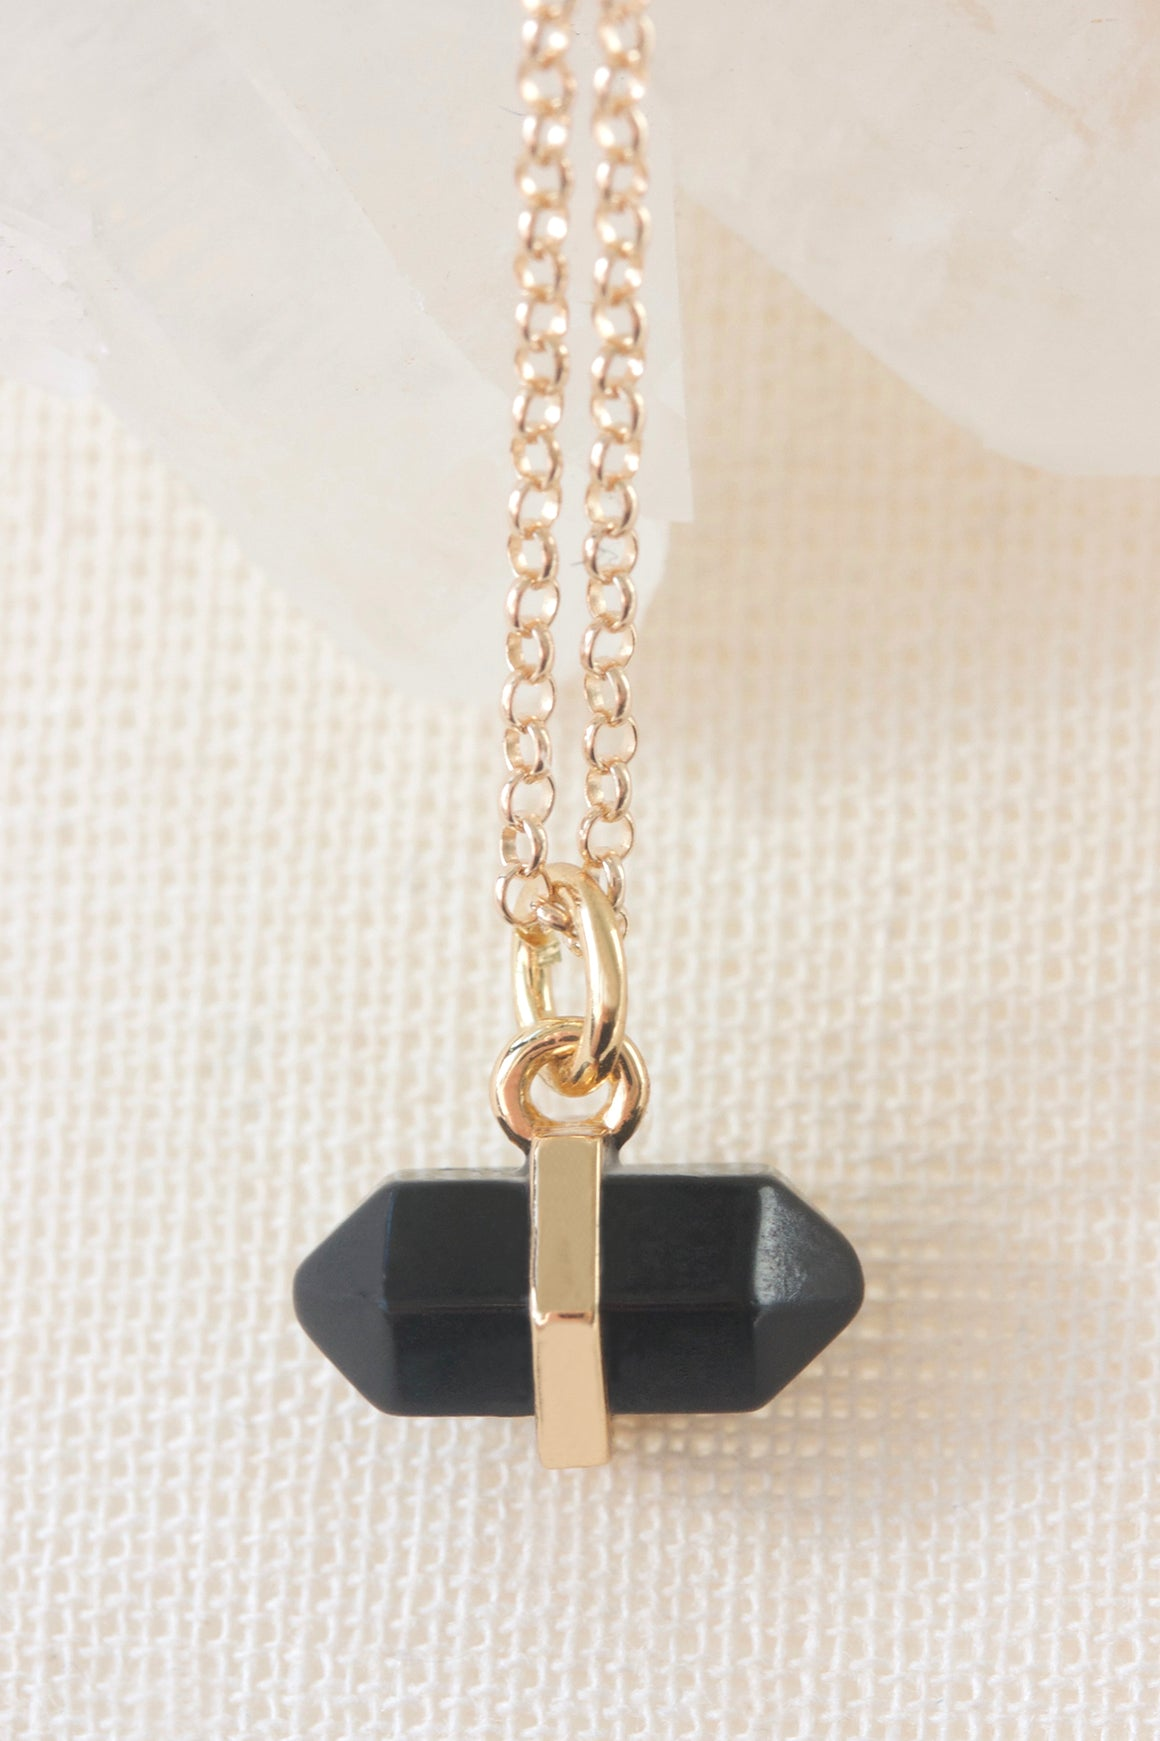 Gold Black Agate Intention Necklace